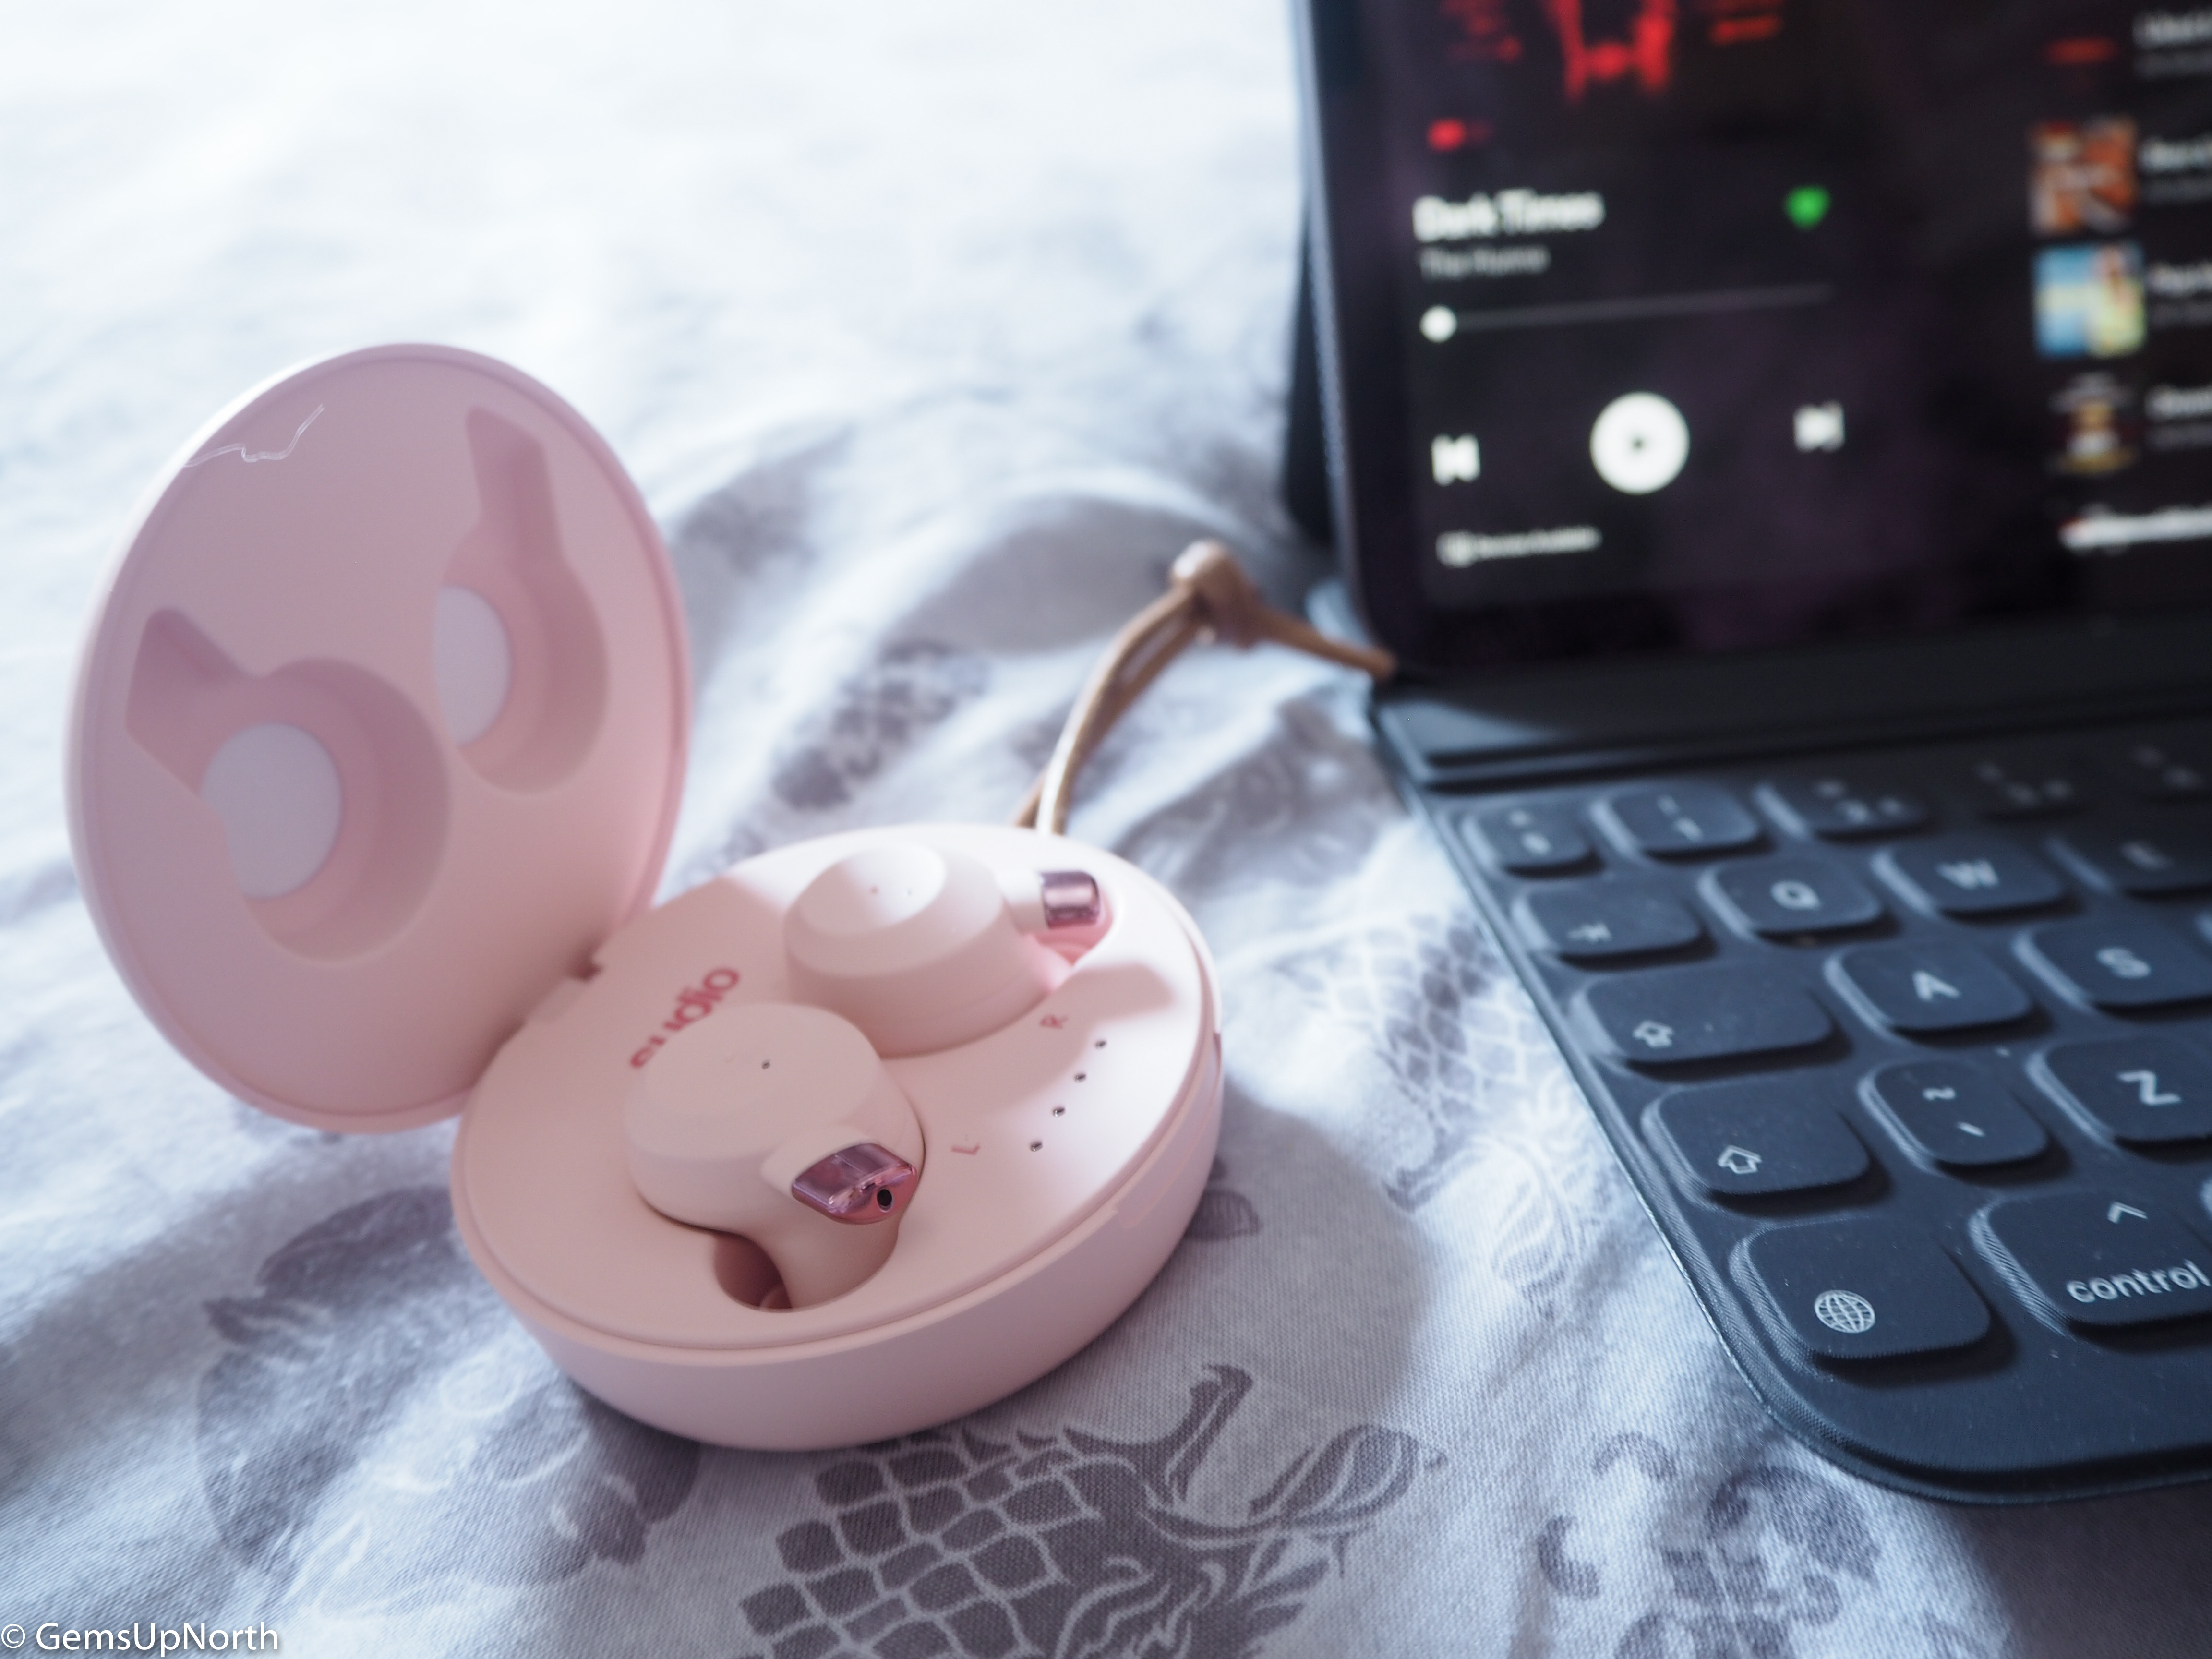 Pink FEM Sudio Ear buds, open in charging case next to an iPad with Spotify playing